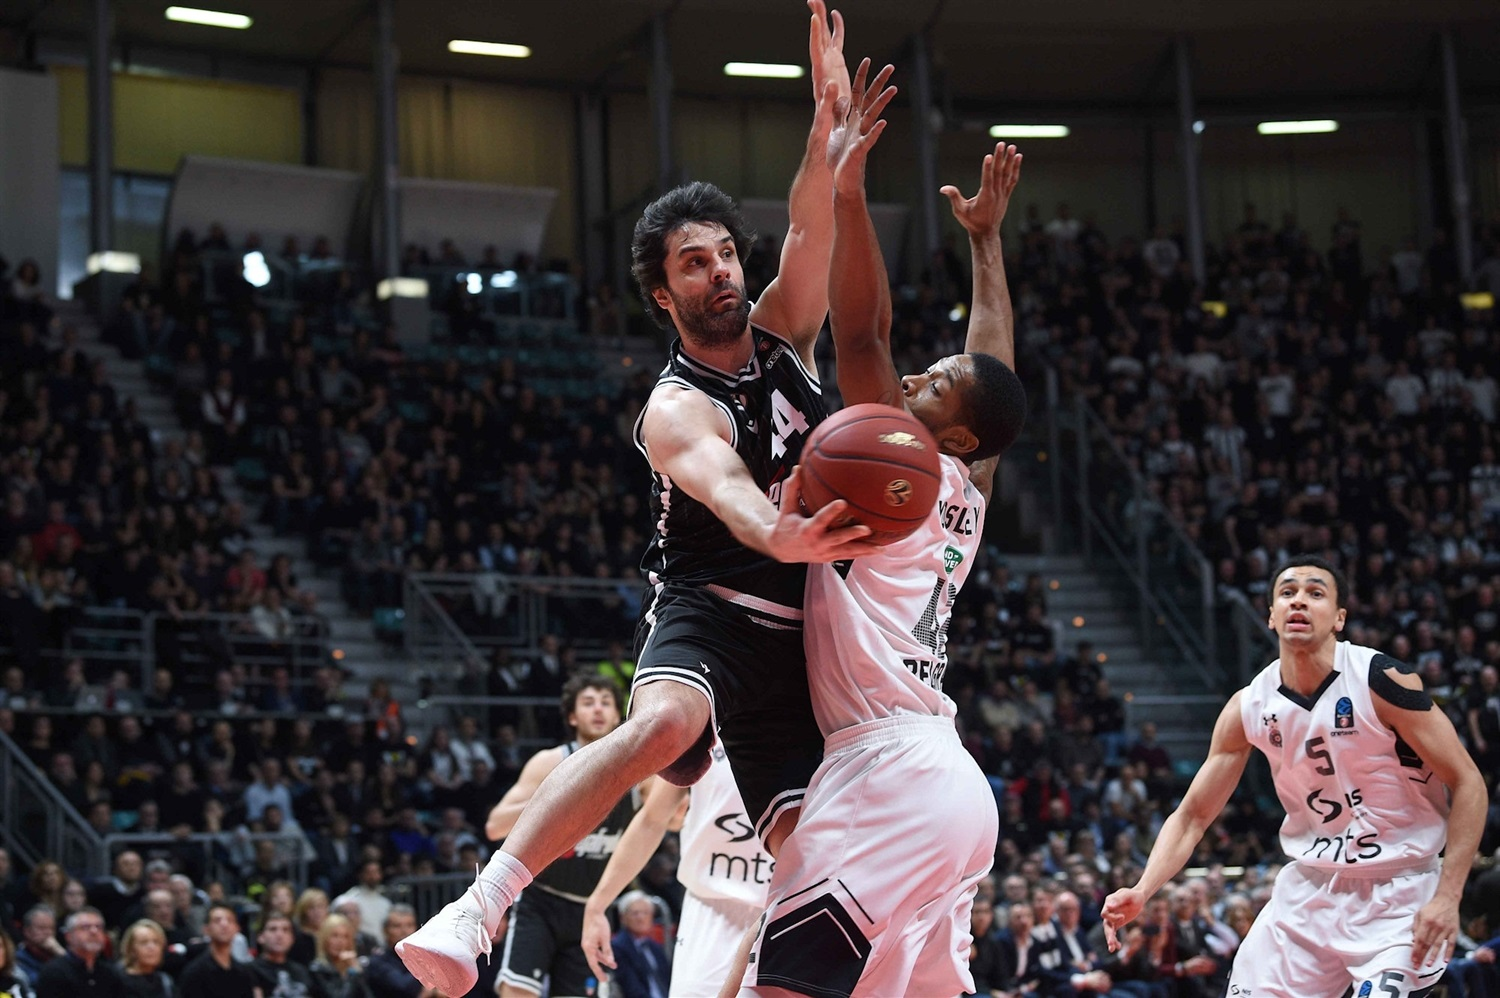 Milos Teodosic - Segafredo Virtus Bologna (photo Massimo Ceretti - Virtus) - EC19